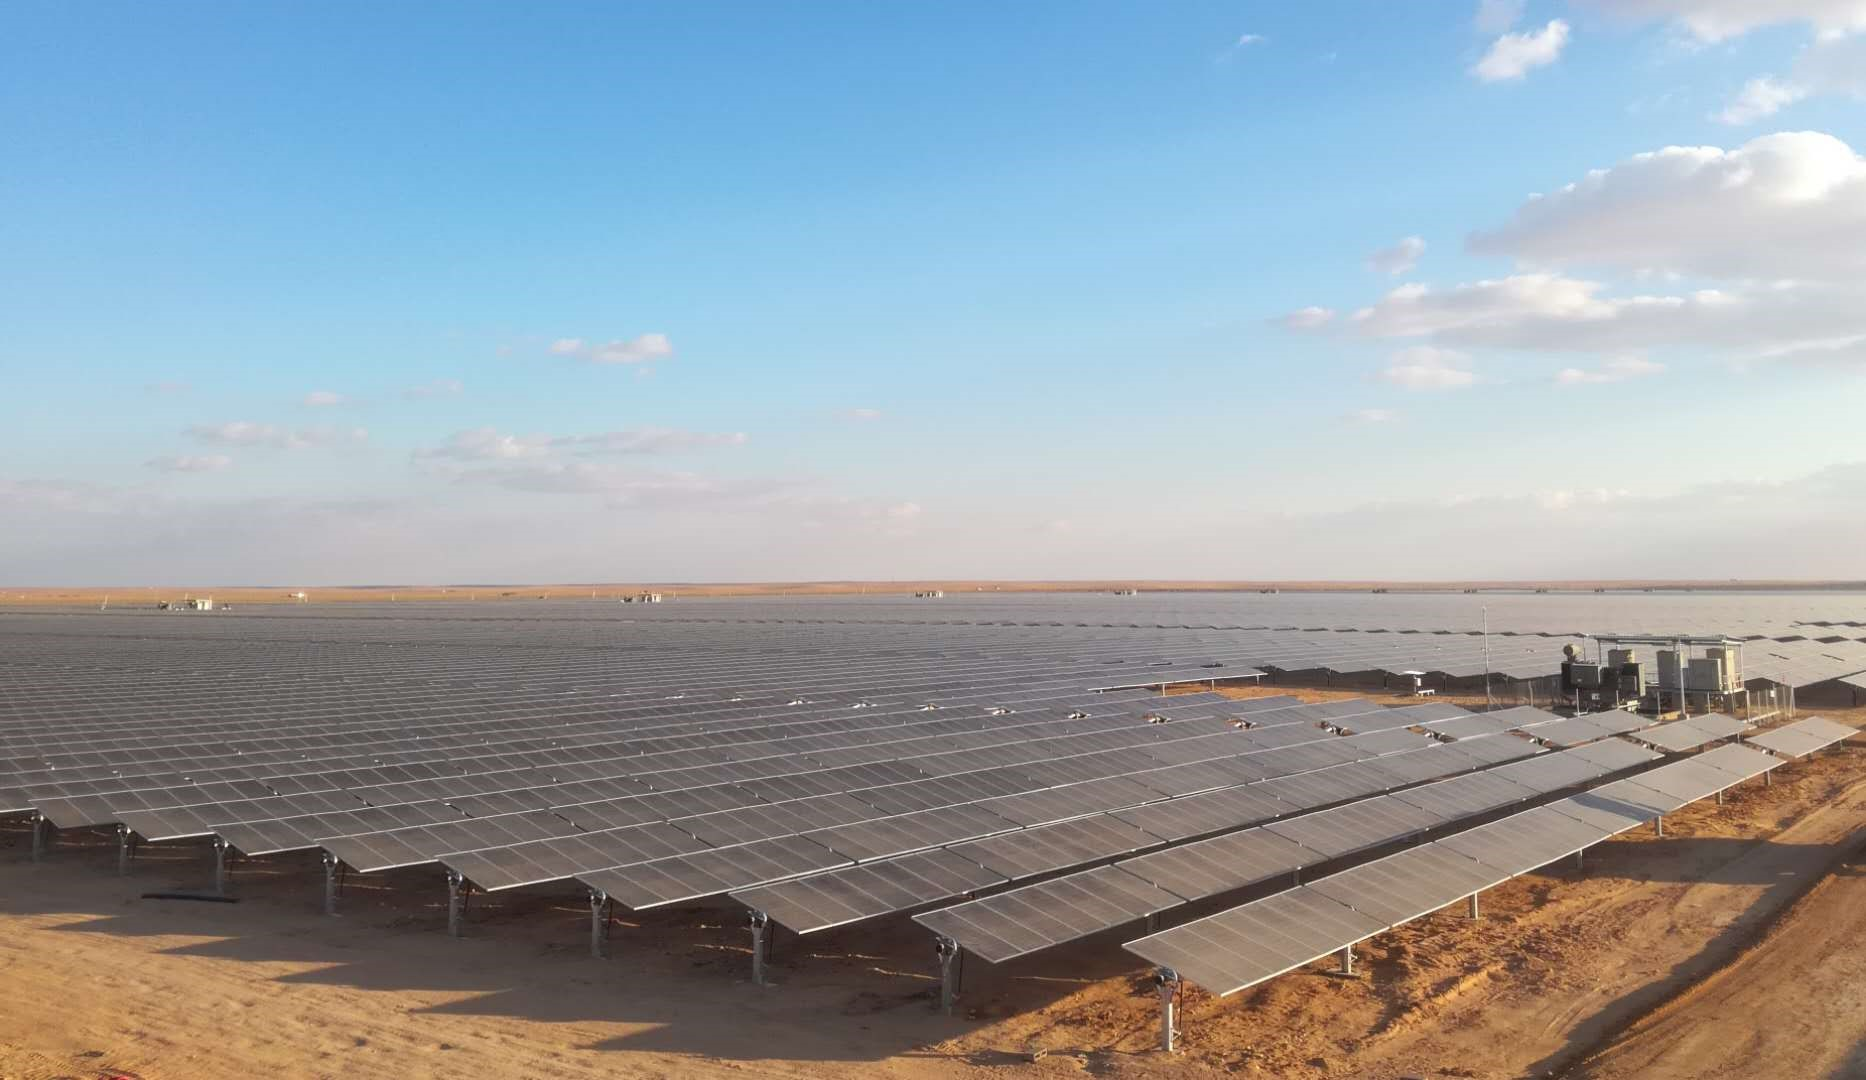 The 300MW Sakaka project, the first large ground-mount plant in Saudi Arabia. Image: Huawei